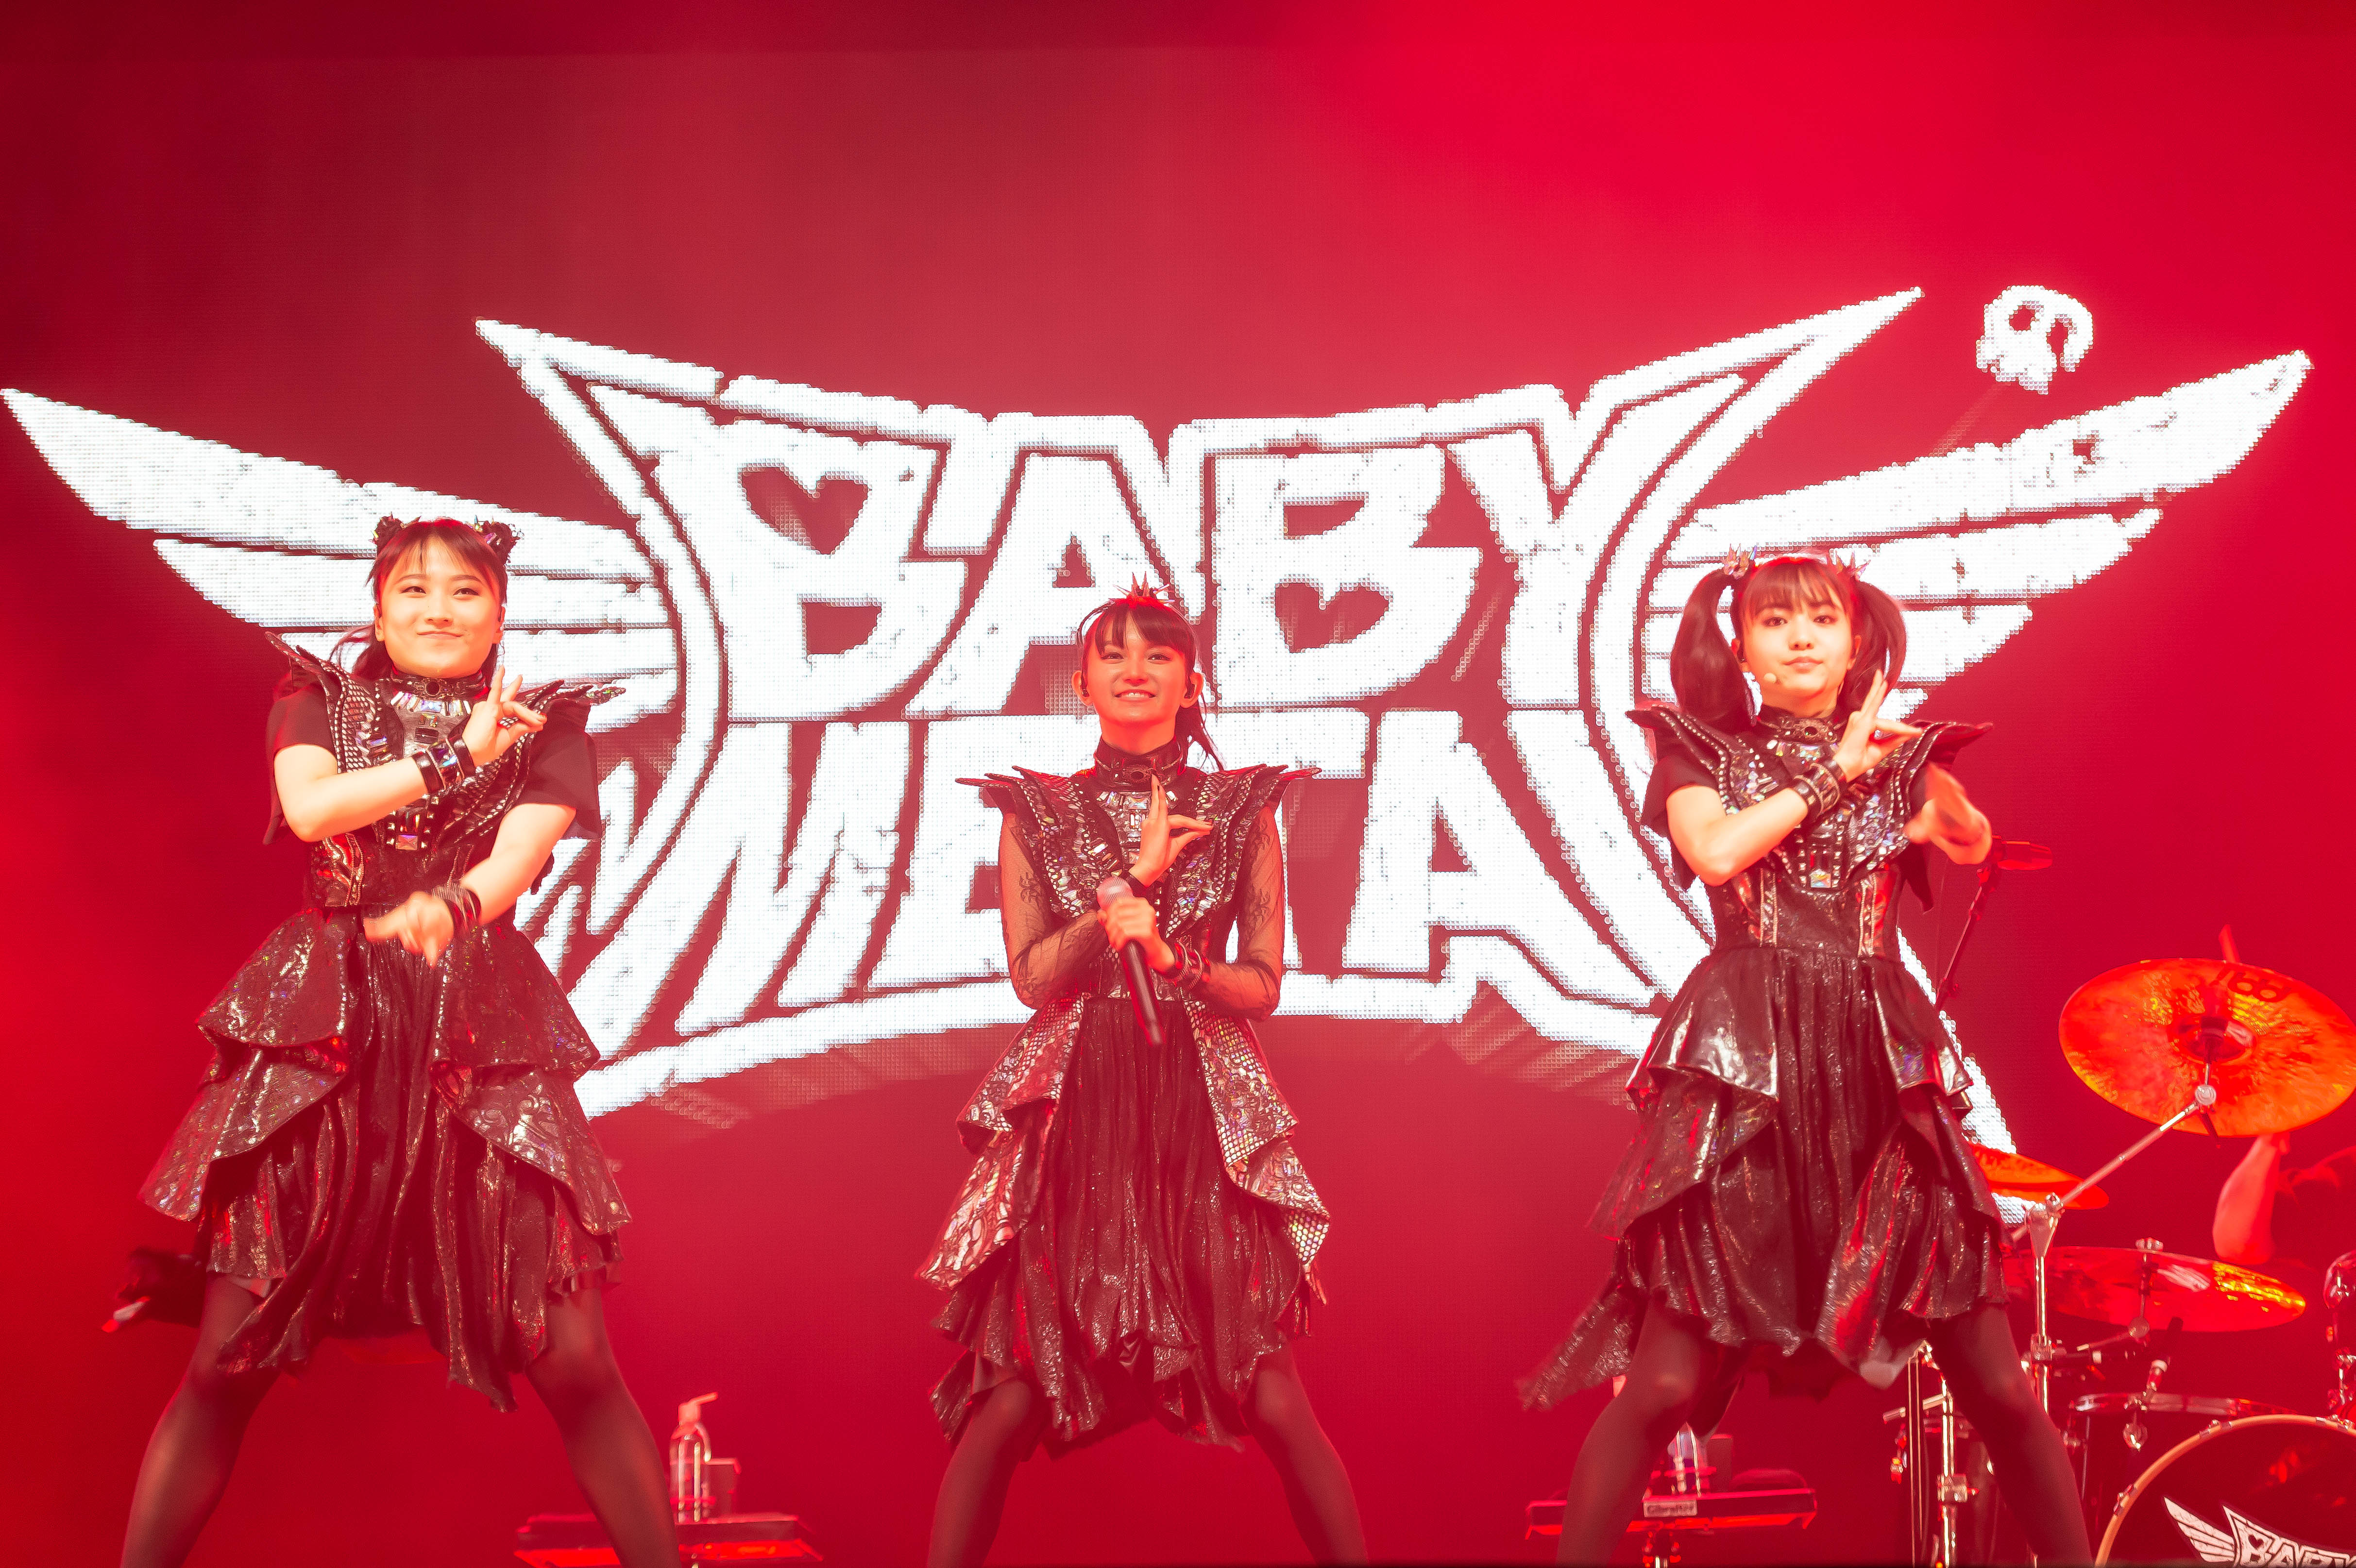 PHOTOS: BABYMETAL brings bouncy, head-banging pop metal to Chicago